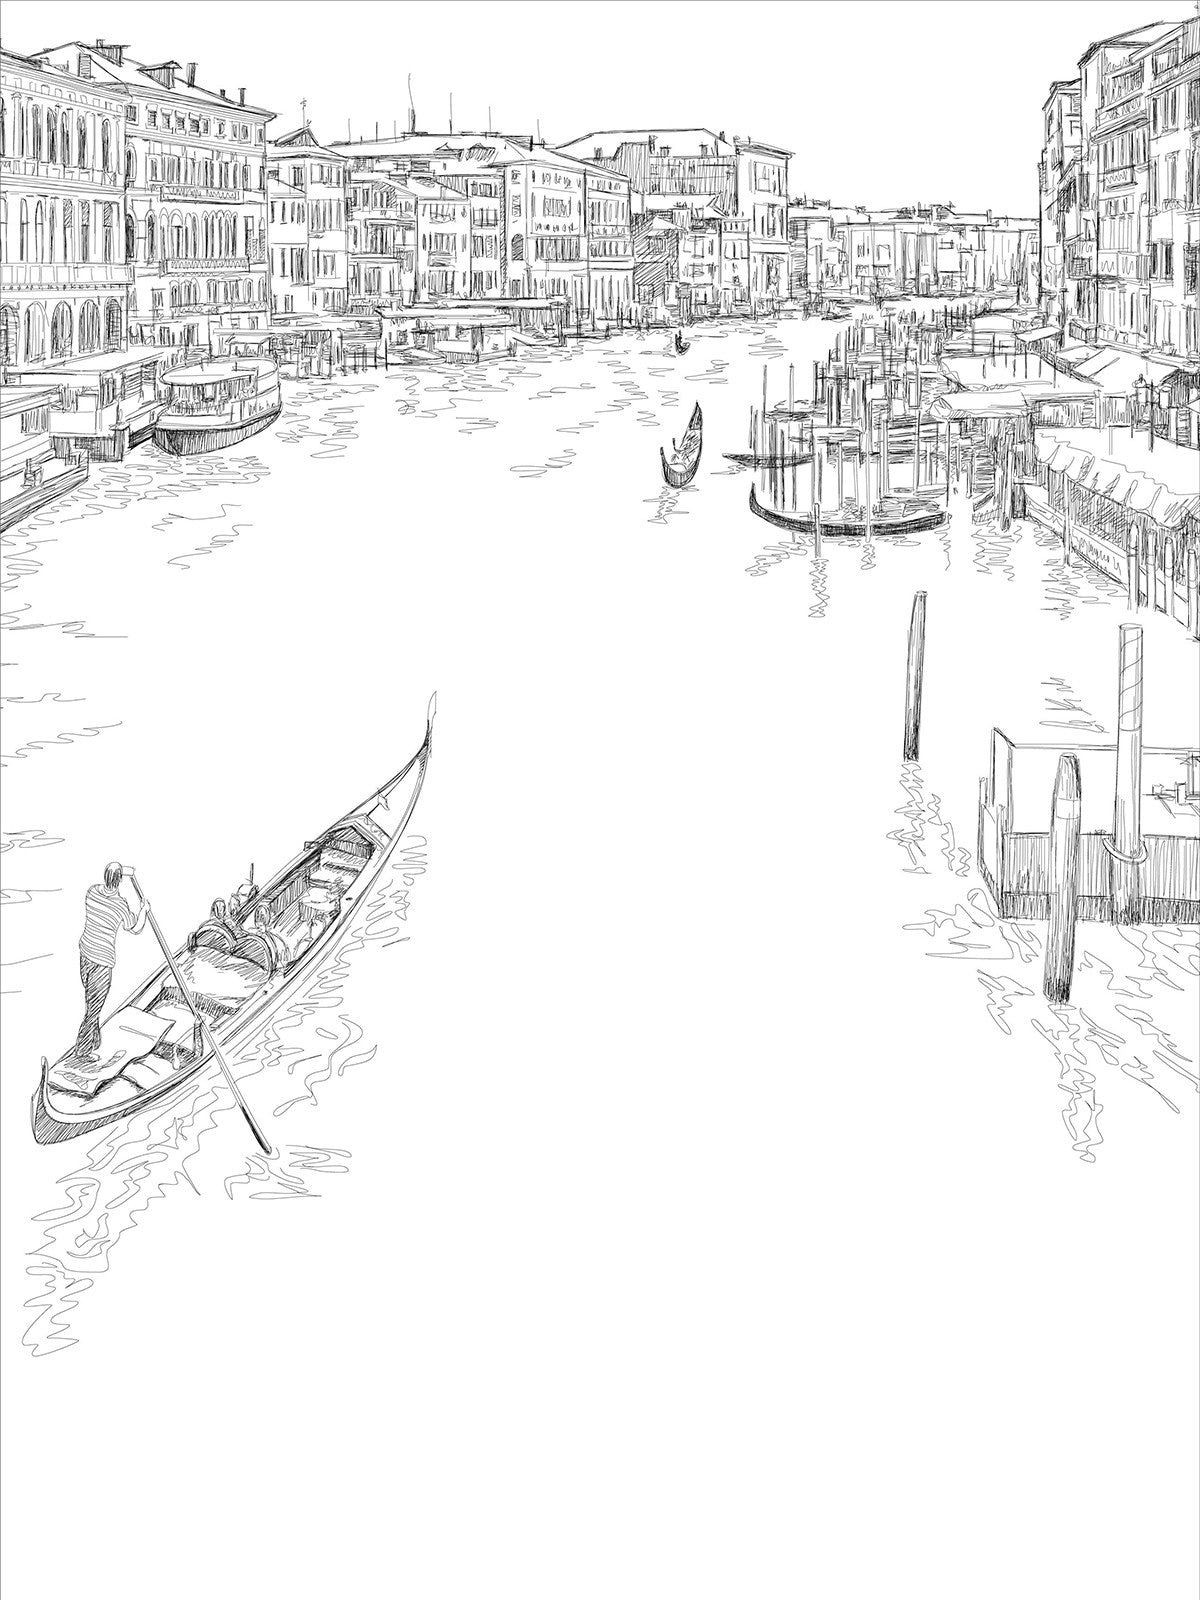 Line Drawing Venice : Venice line art printed photo backdrop dropplace